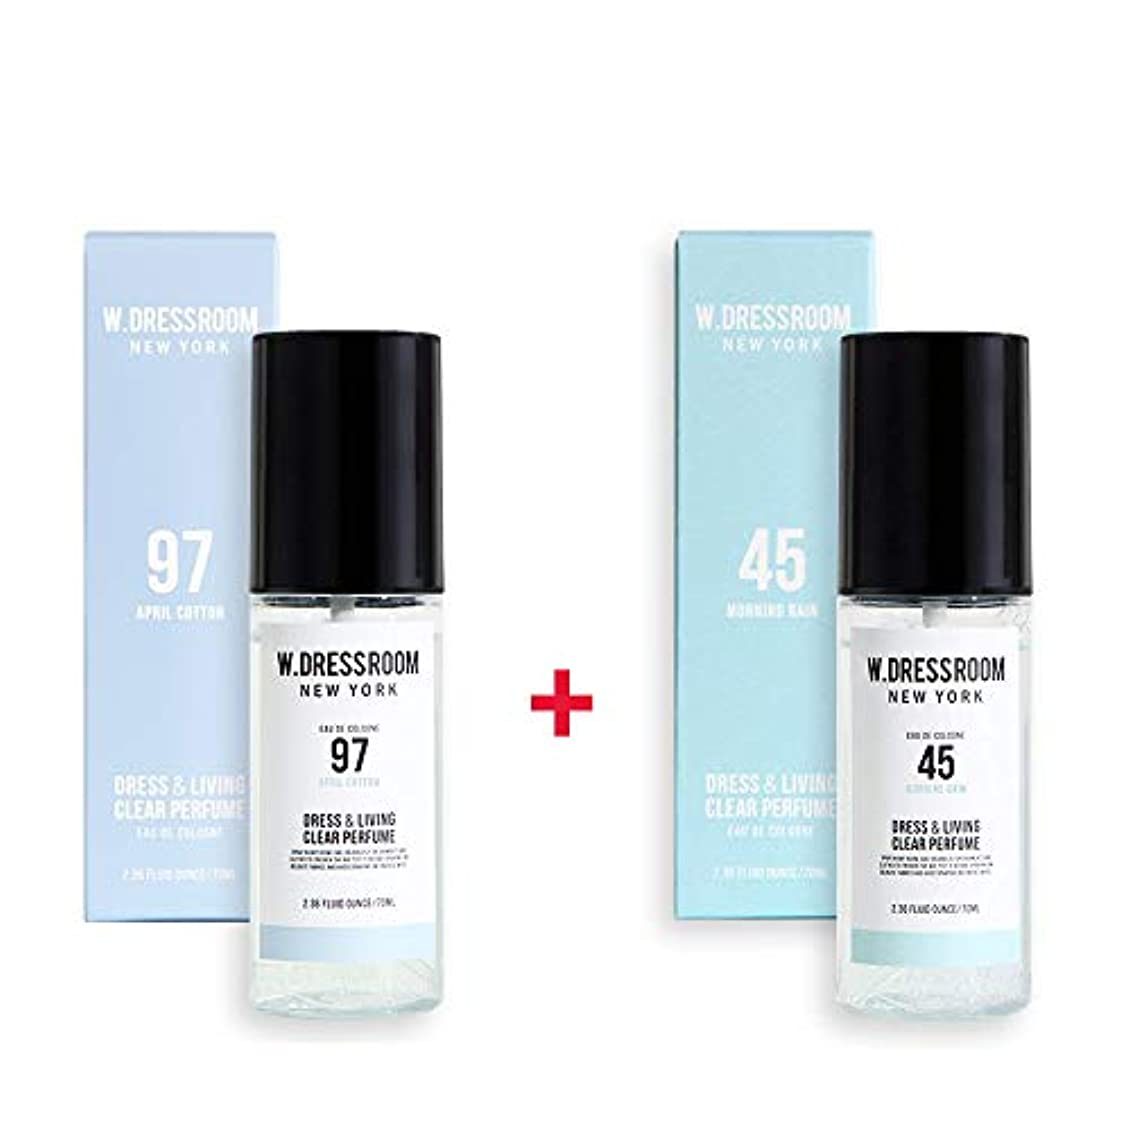 バケット洗練冒険W.DRESSROOM Dress & Living Clear Perfume 70ml (No 97 April Cotton)+(No 45 Morning Rain)